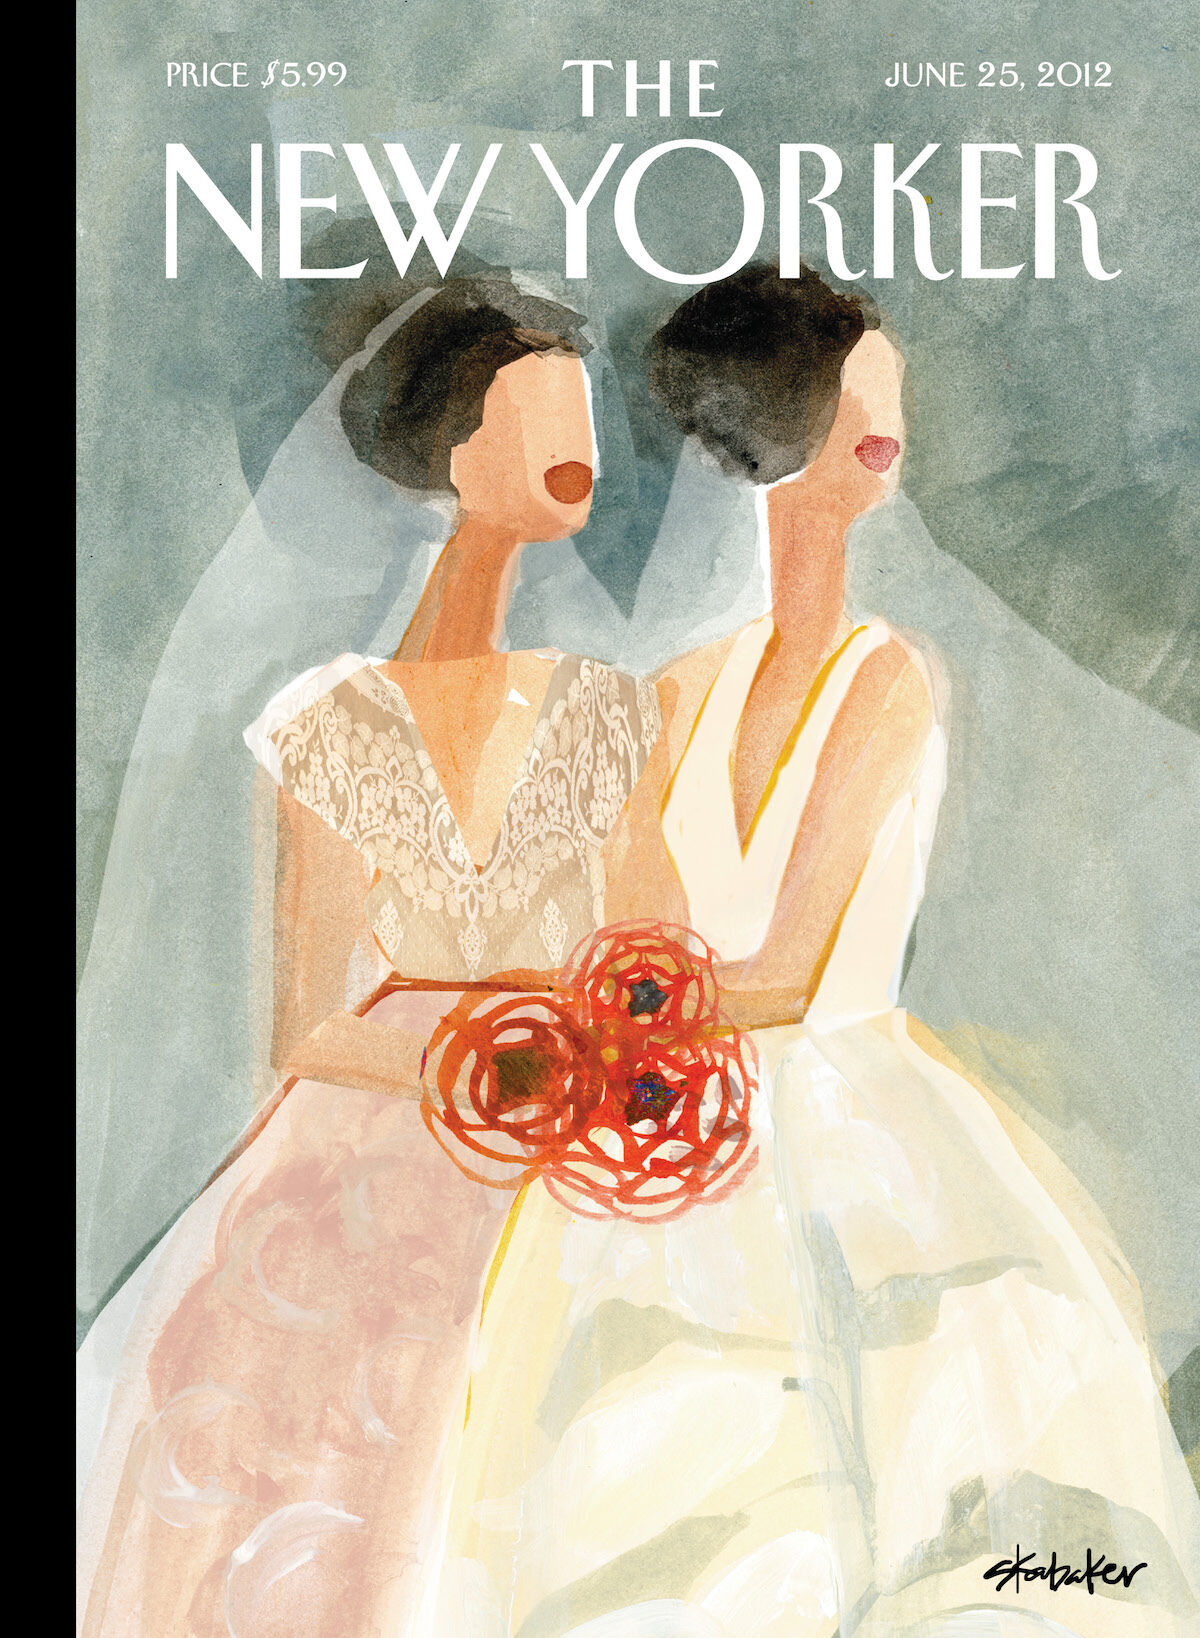 """June Brides,"" by Gayle Kabaker, June 25, 2012. Courtesy of The New Yorker. Used with permission."